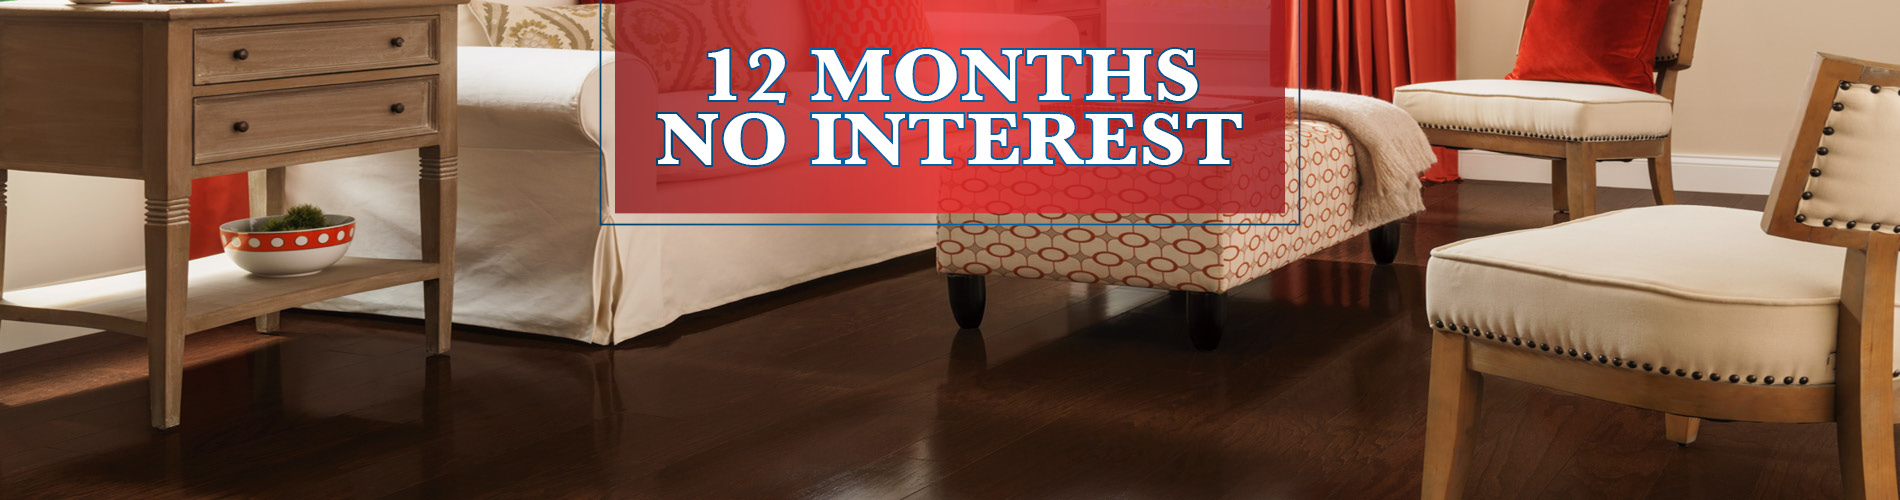 12 months interest free financing available at Anniston Floors To Go!